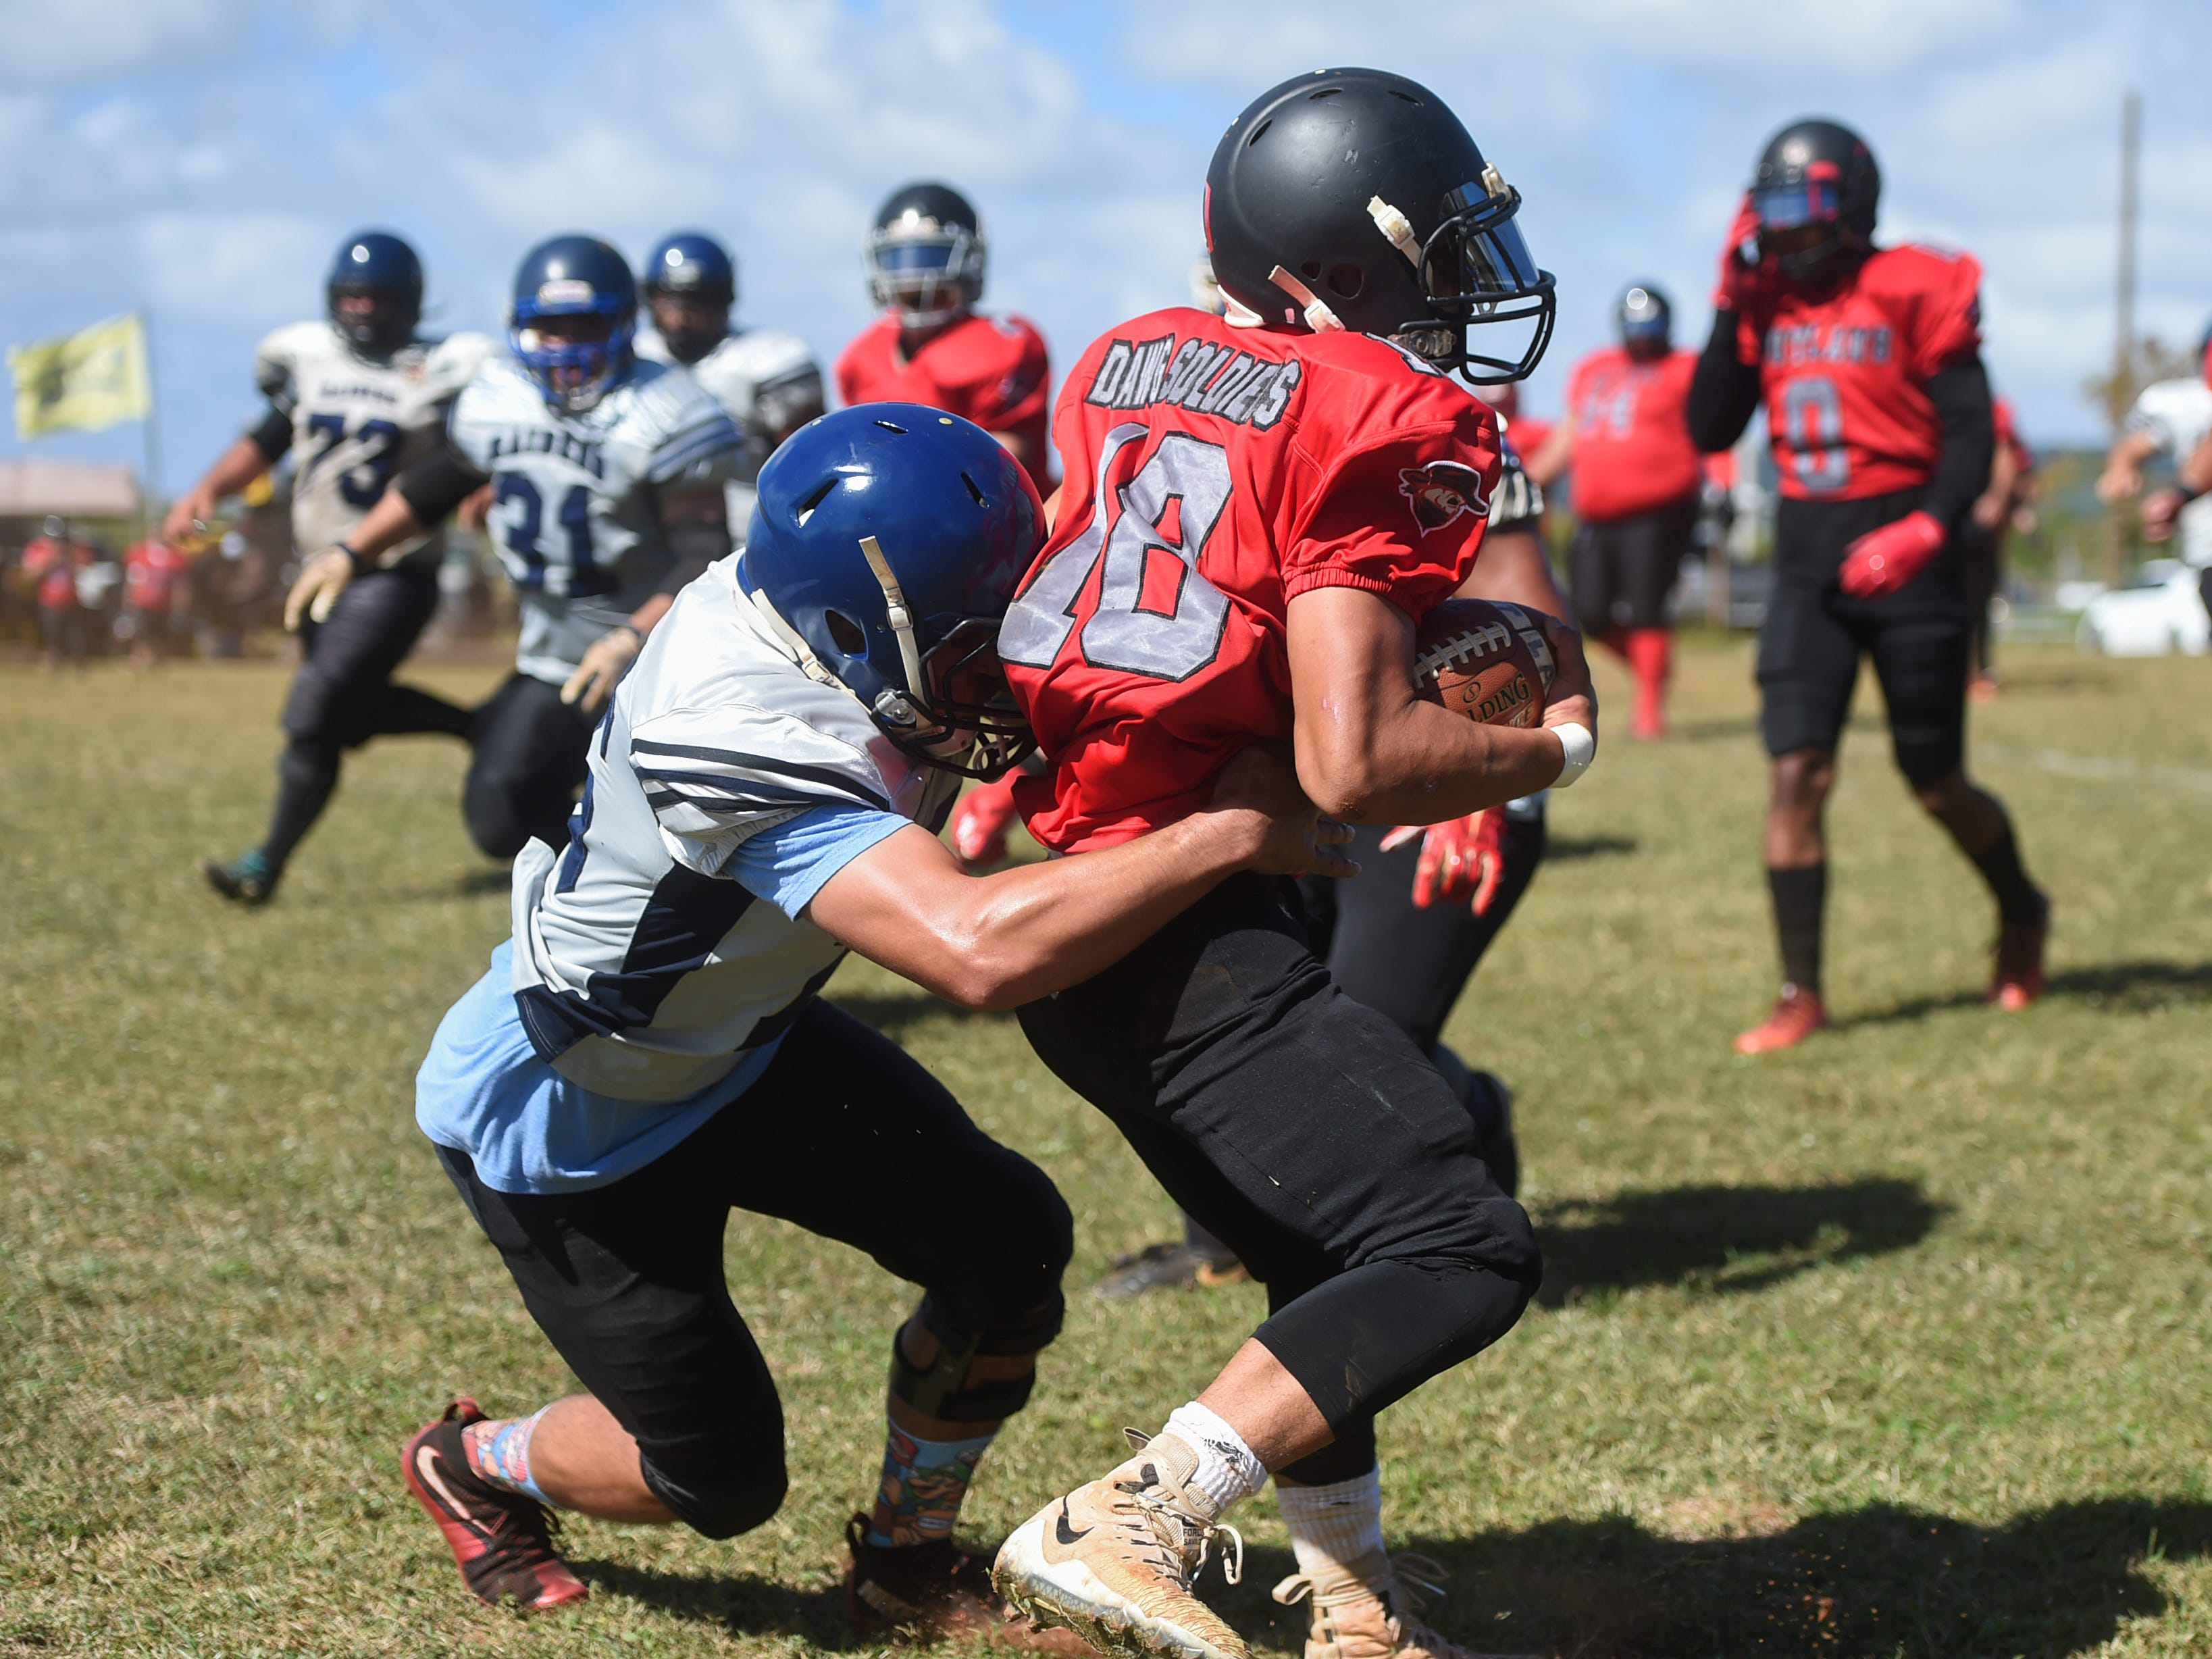 Outlaws player Justin Tanguileg (18) is tackled by a Guam Raiders player during their Budweiser Guahan Varsity Football League game at Eagles Field in Mangilao, Feb. 16, 2019.